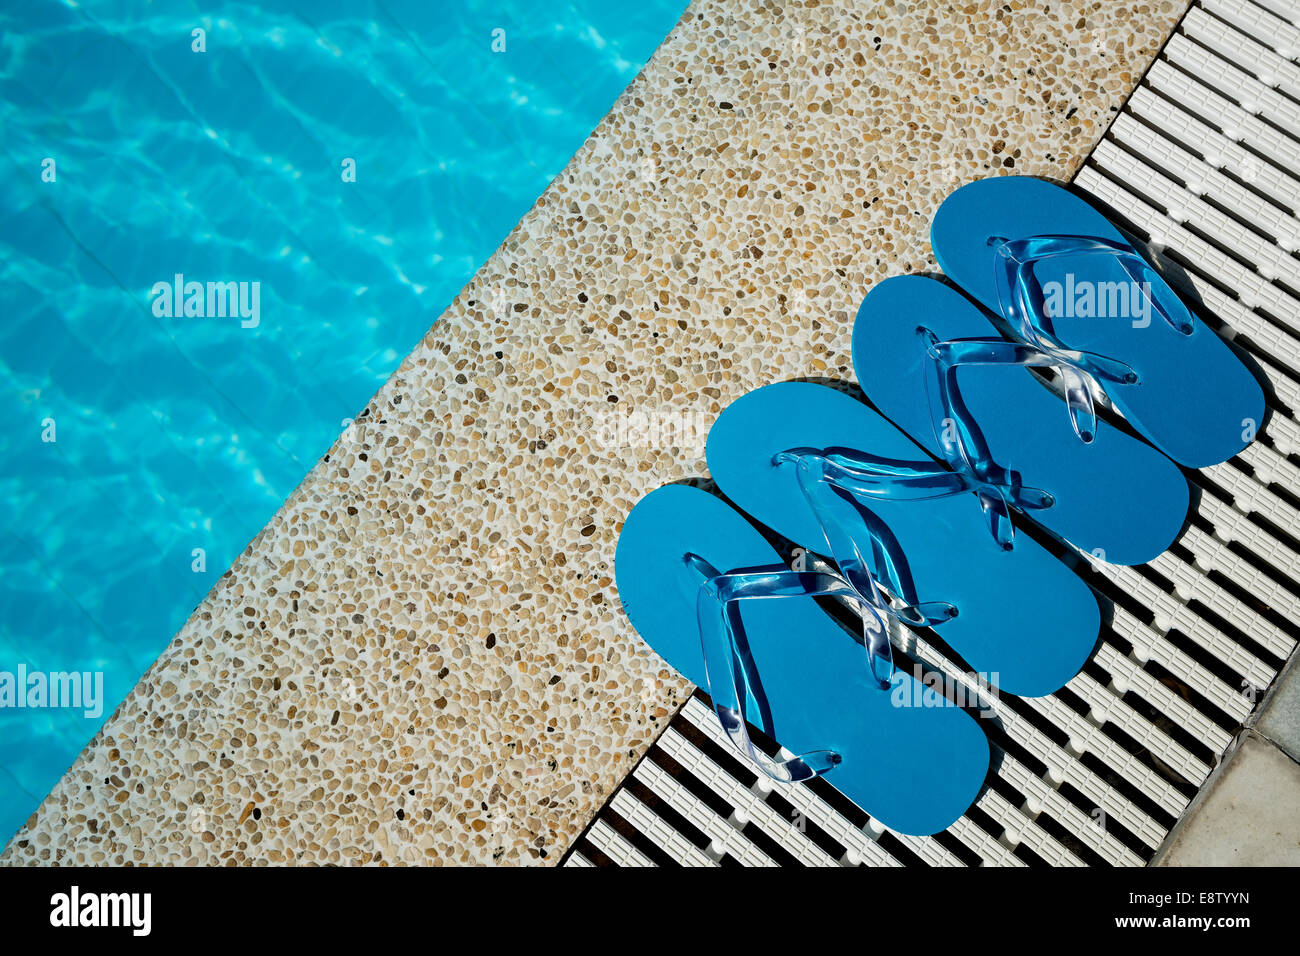 Flip Flop on Wood Floor pool edge with surface of water background - Stock Image